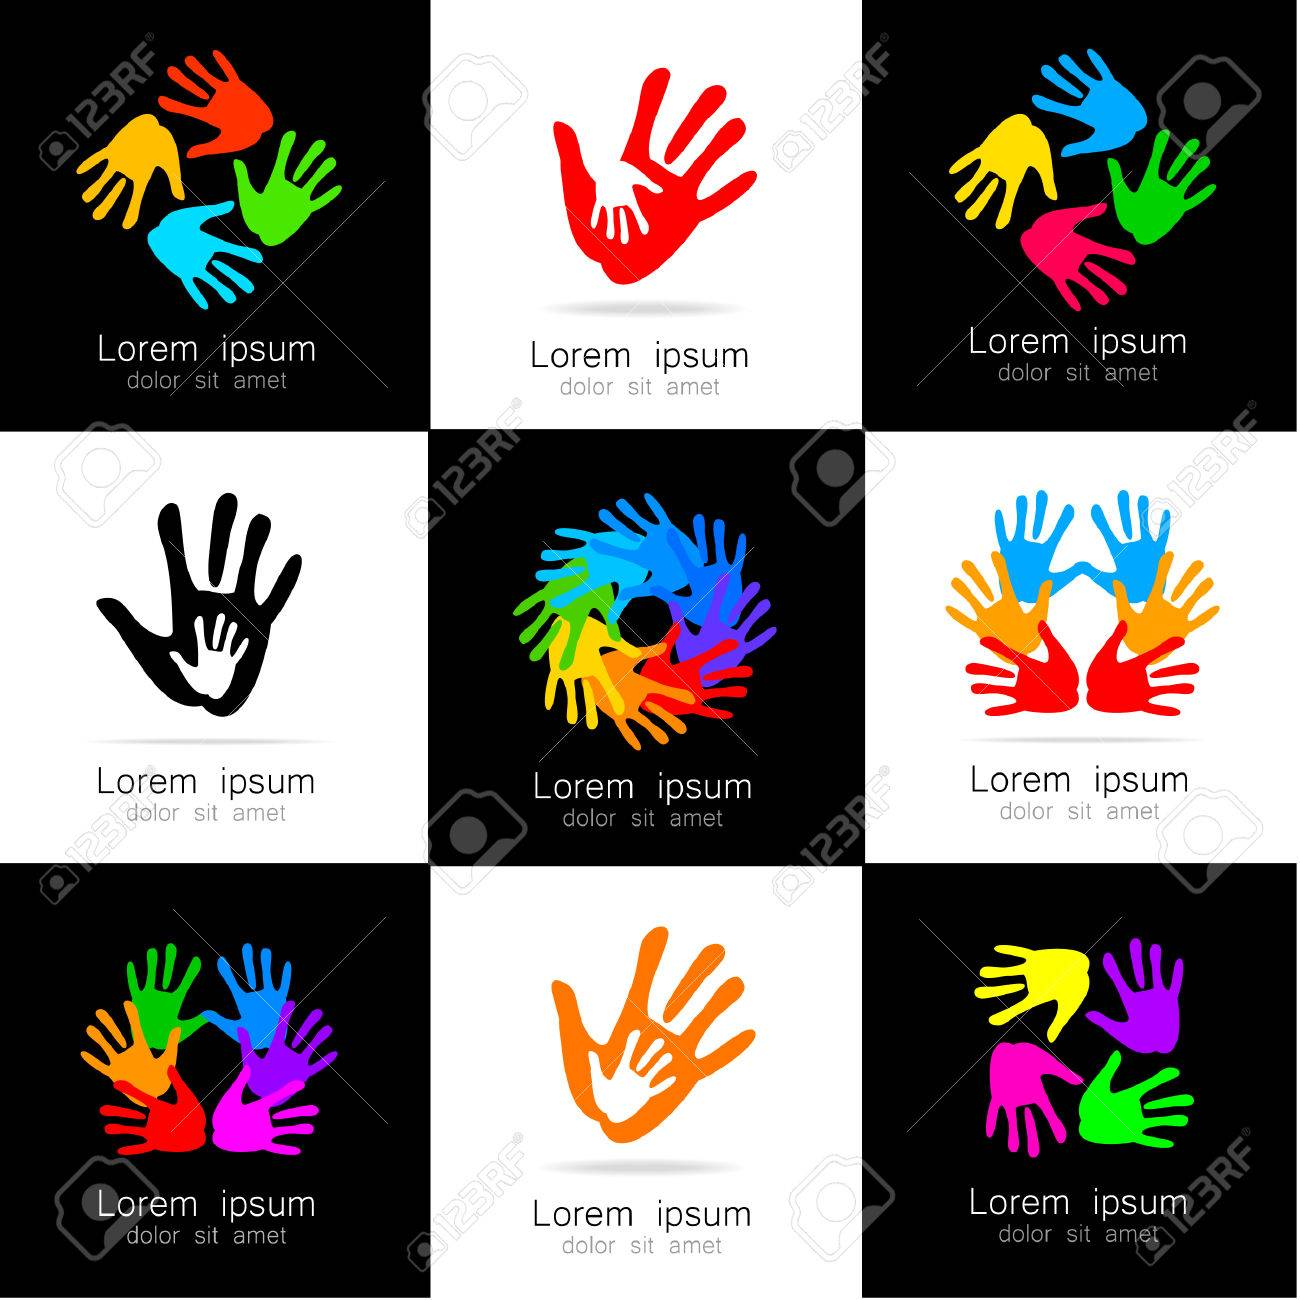 Hands - A Collection Of Logo Templates. Design Ideas For Team ...